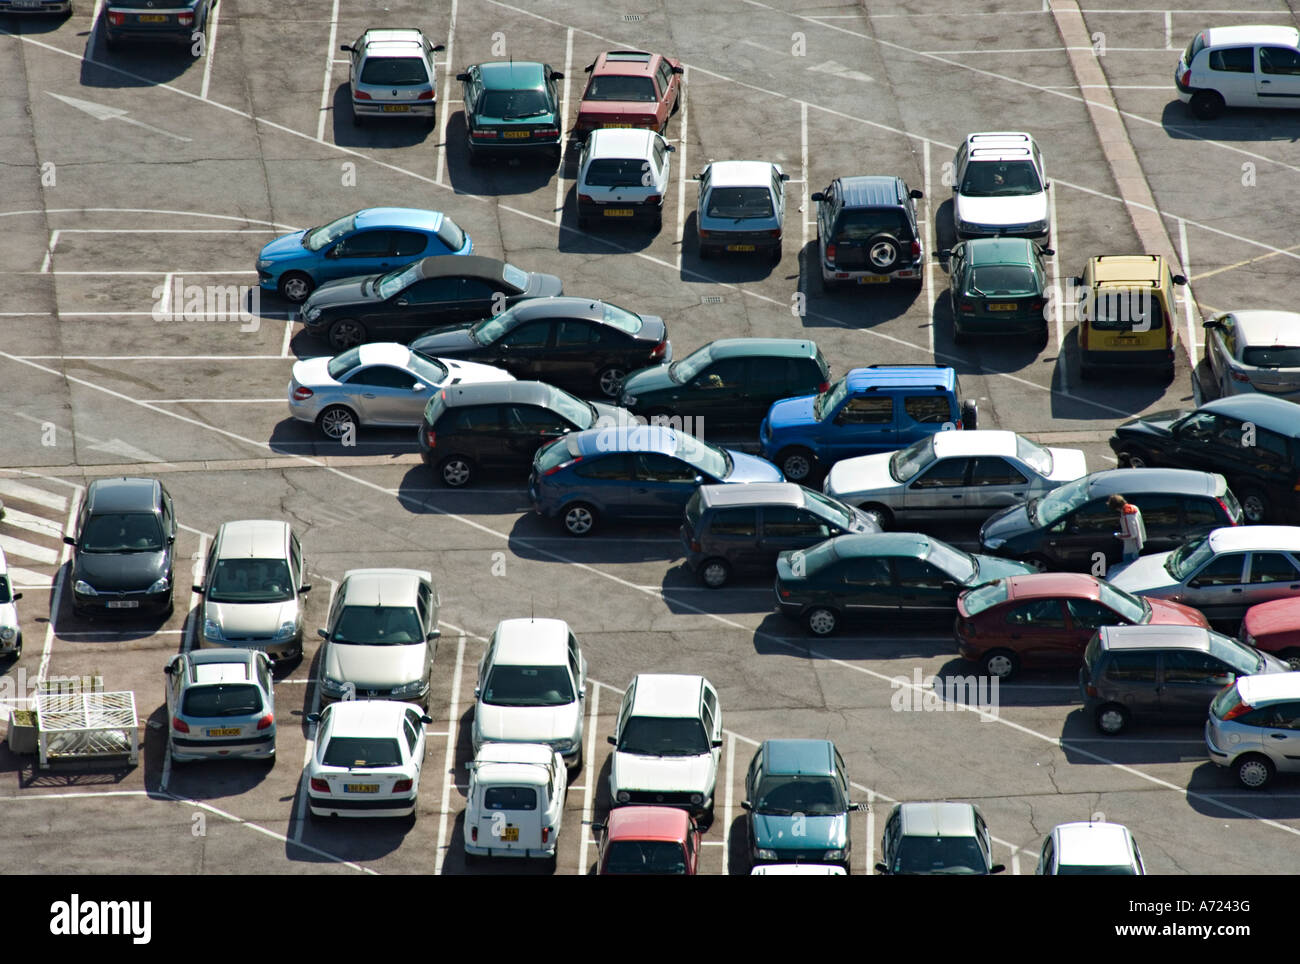 A pattern of parked cars in the port of Nice, France - Stock Image